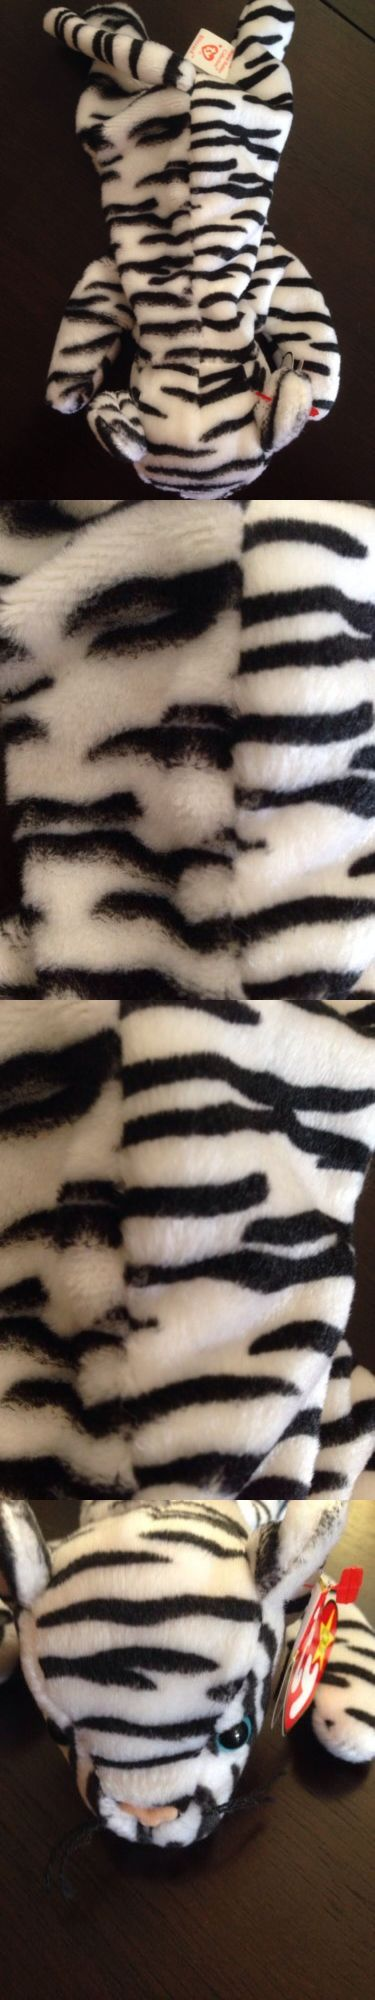 Current 1628: Ty Beanie Buddy Baby White Tiger (Blizzard) Mismatched Fabric Stripes -> BUY IT NOW ONLY: $79.99 on eBay!